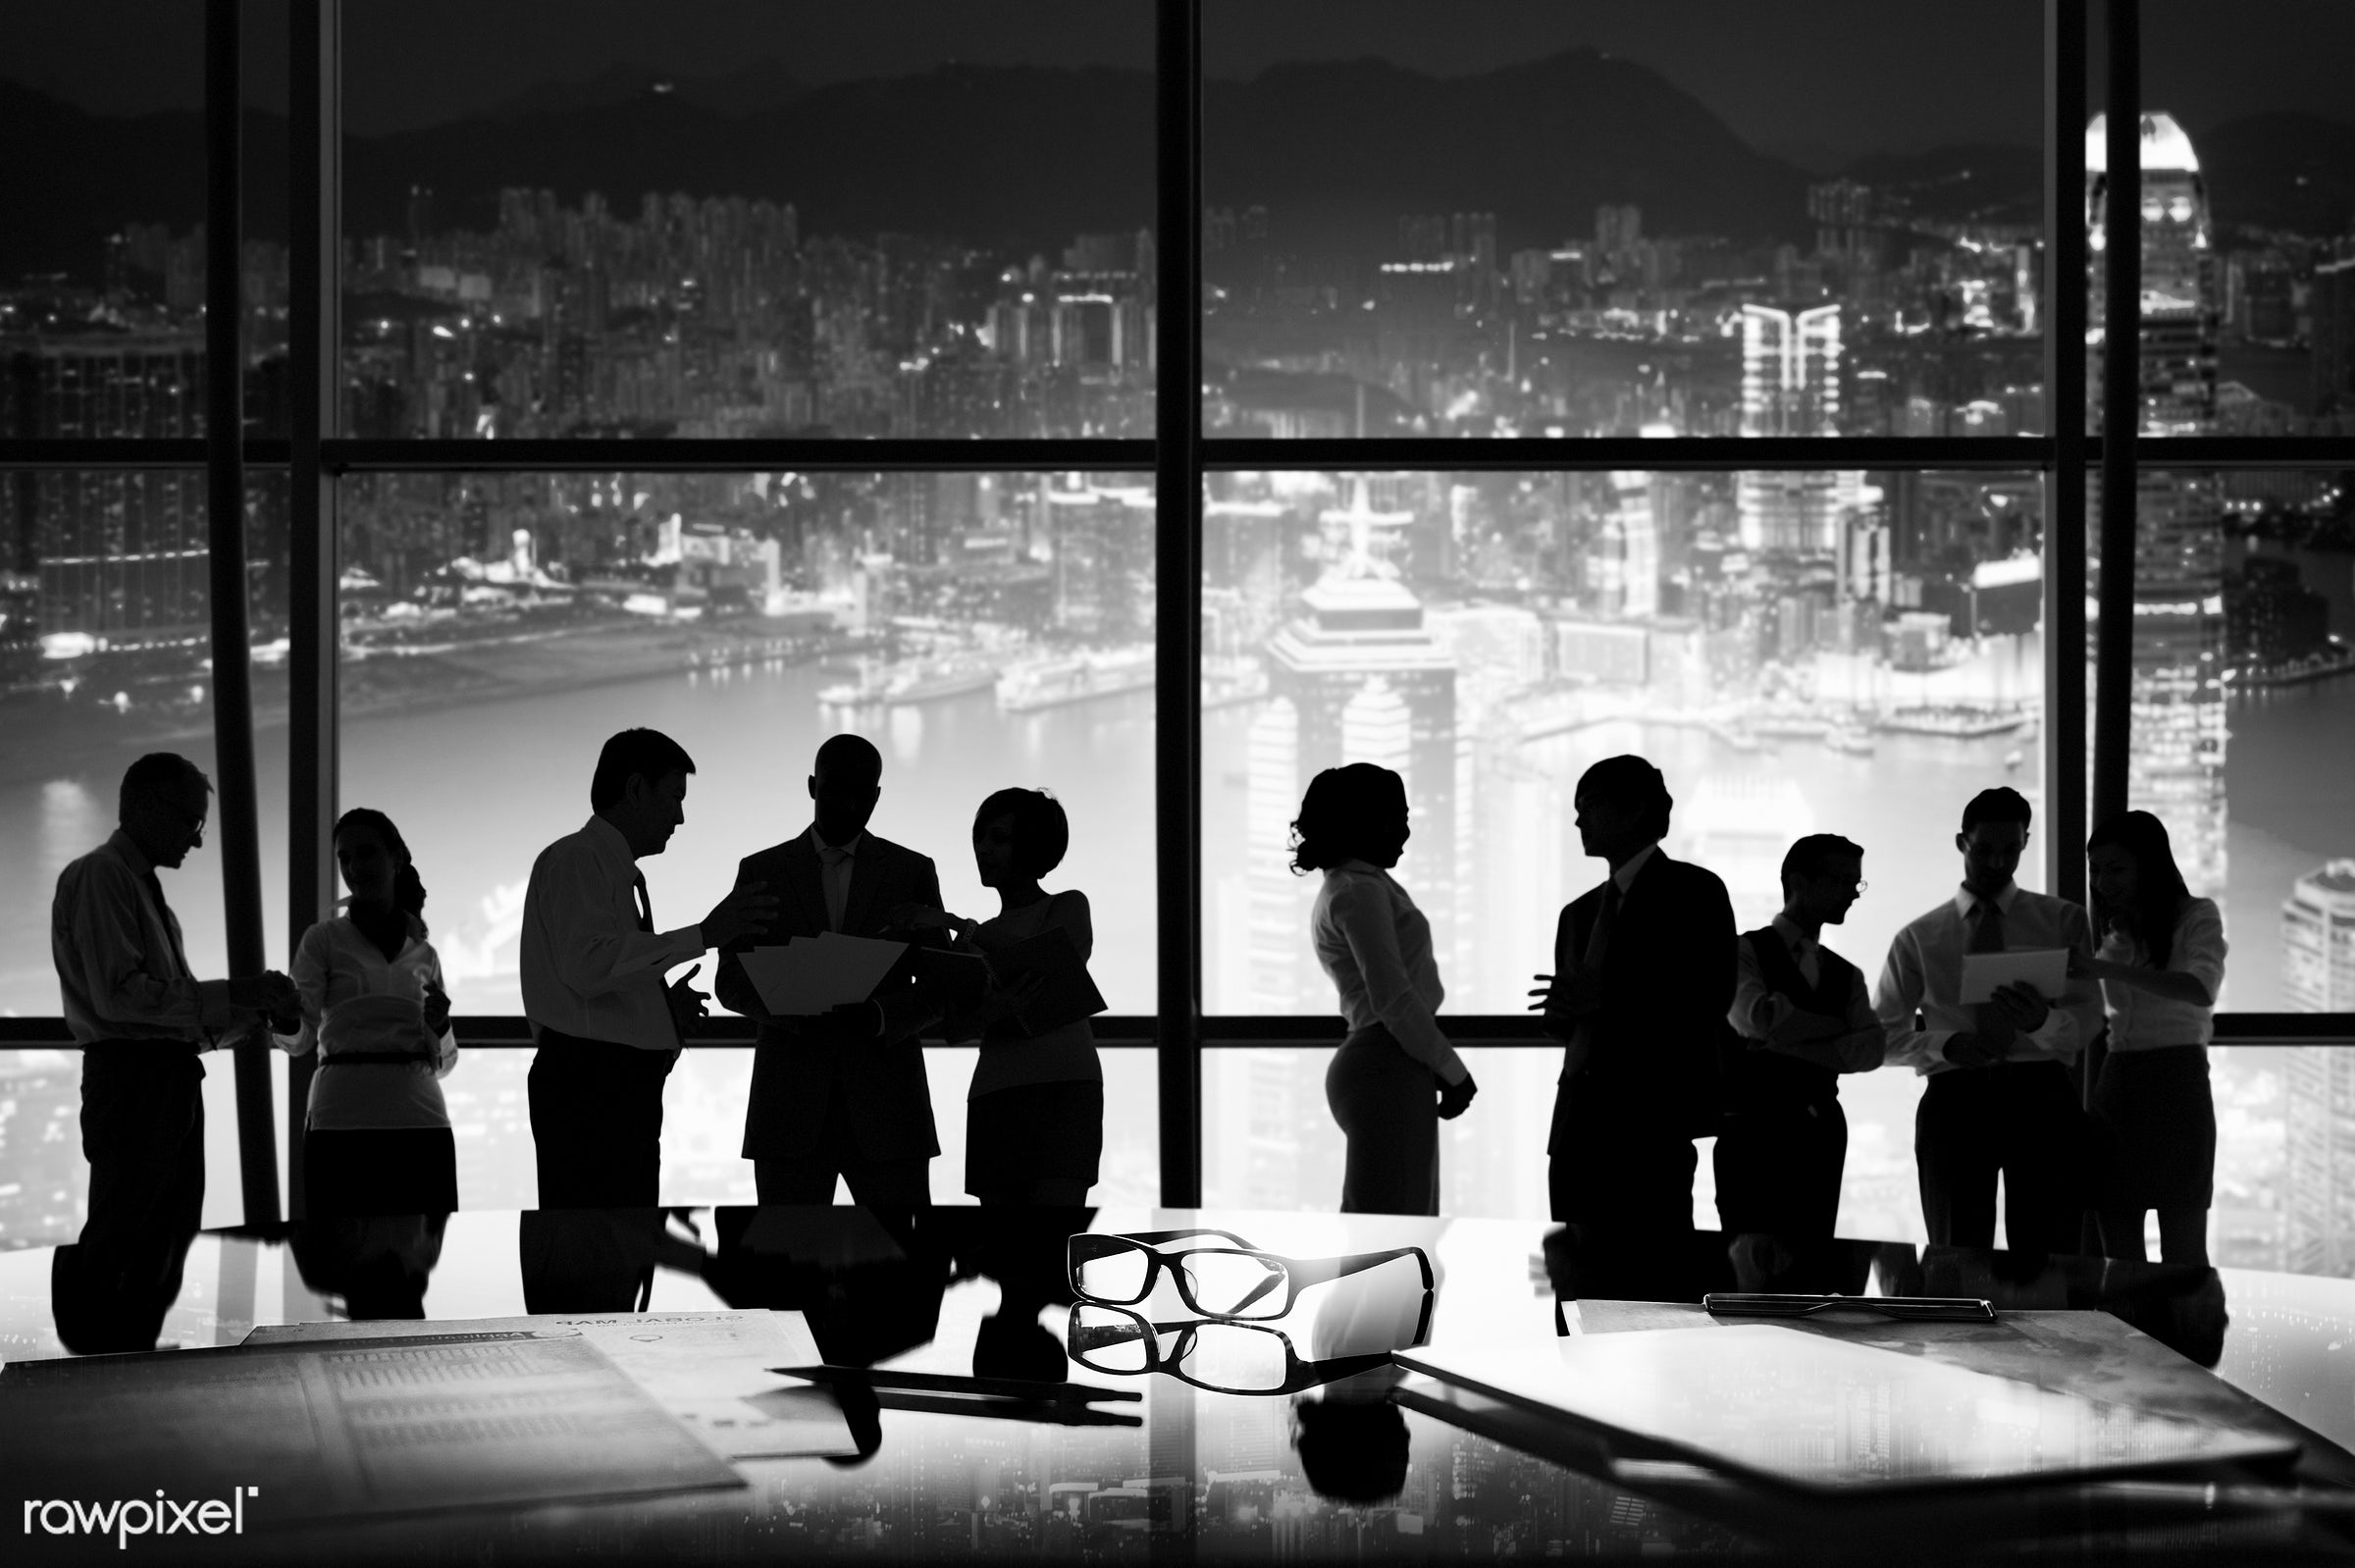 white, black, board room, brainstorming, building interior, business, business people, business person, businessman,...